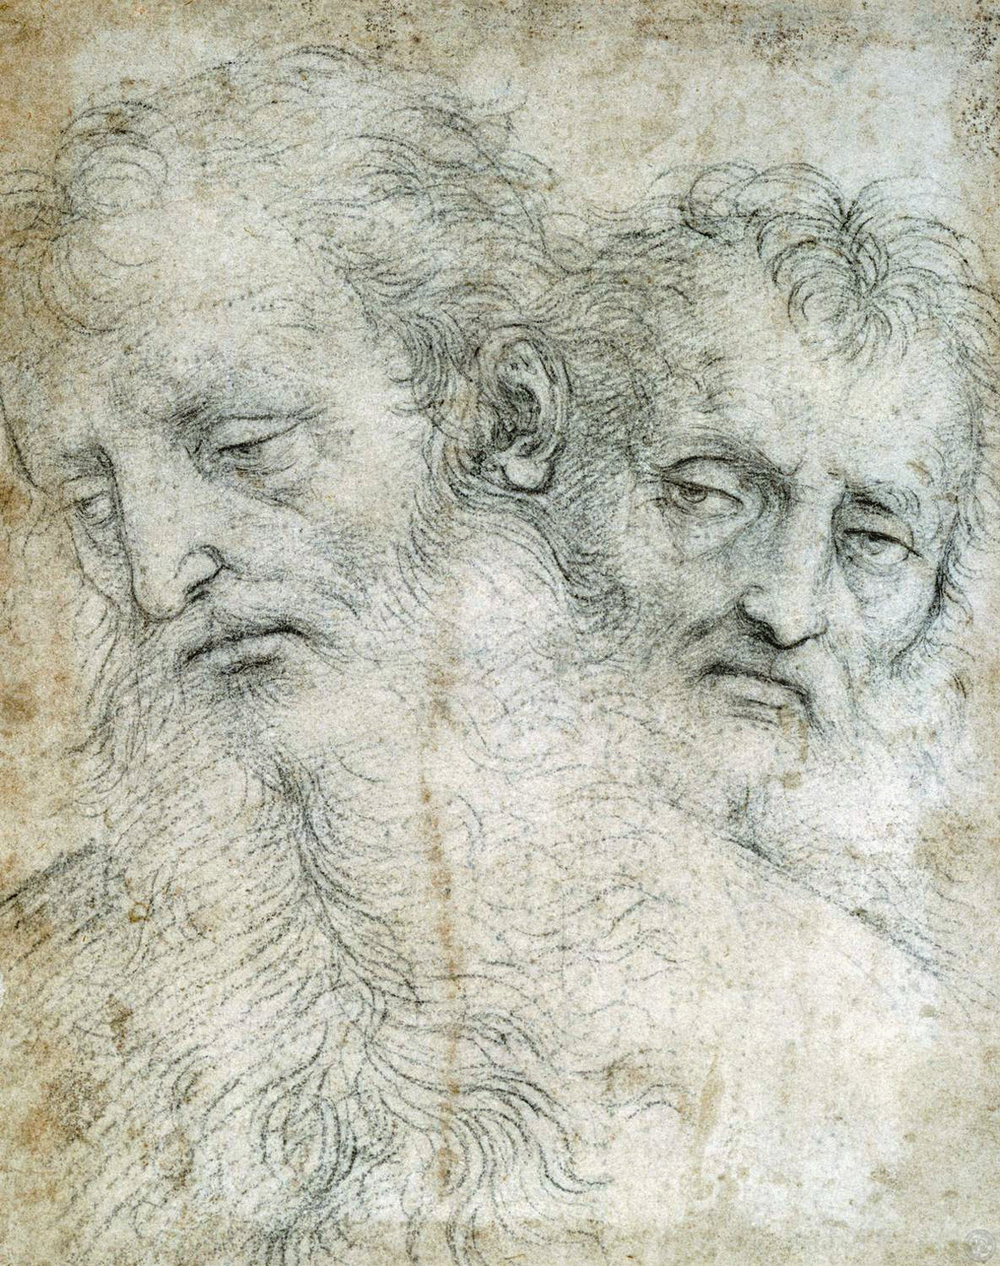 The heads of two Apostles